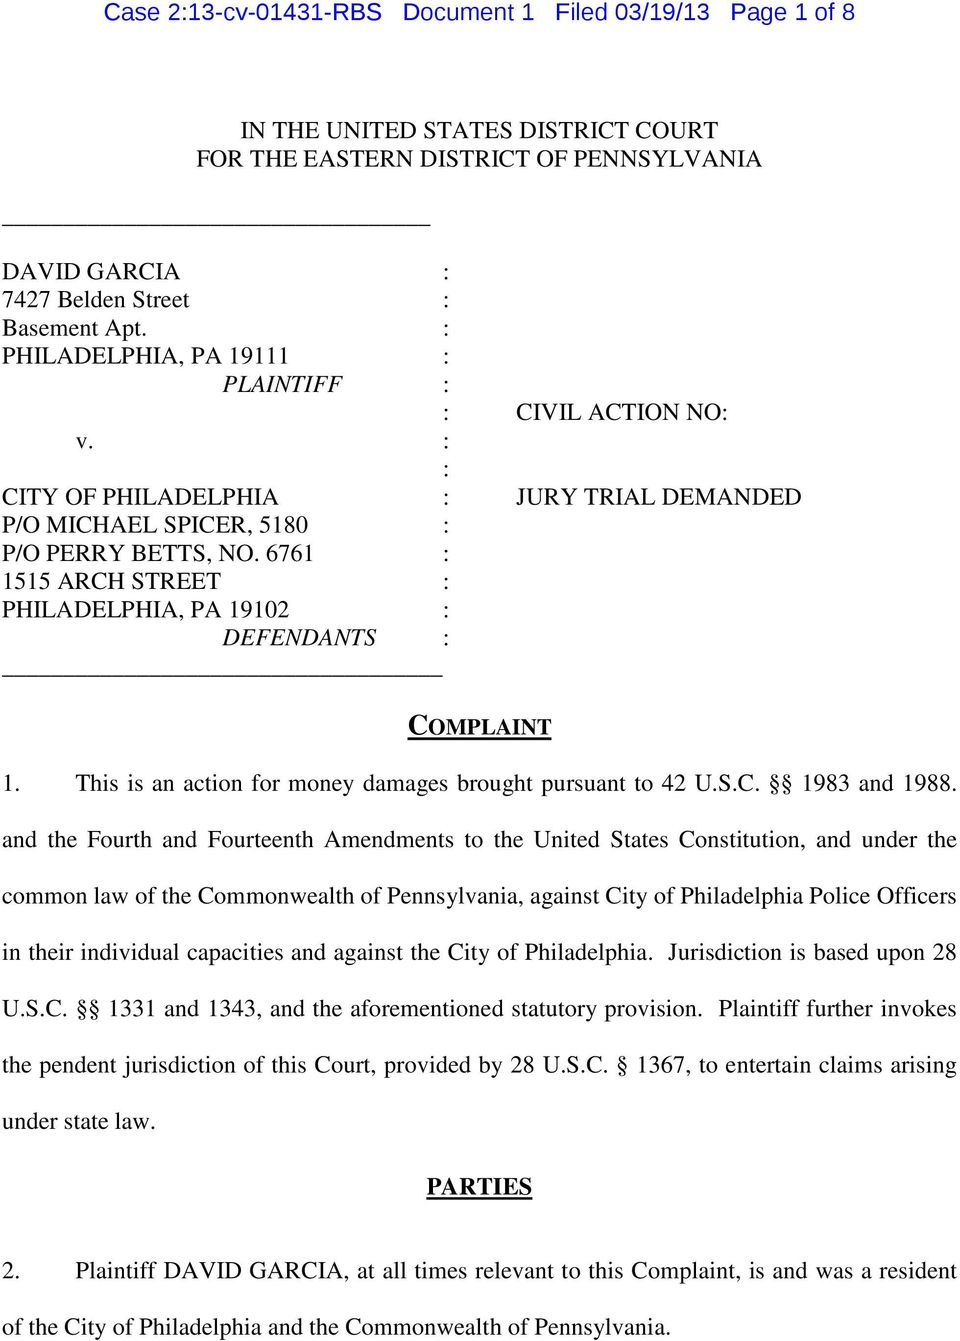 6761 : 1515 ARCH STREET : PHILADELPHIA, PA 19102 : DEFENDANTS : COMPLAINT 1. This is an action for money damages brought pursuant to 42 U.S.C. 1983 and 1988.